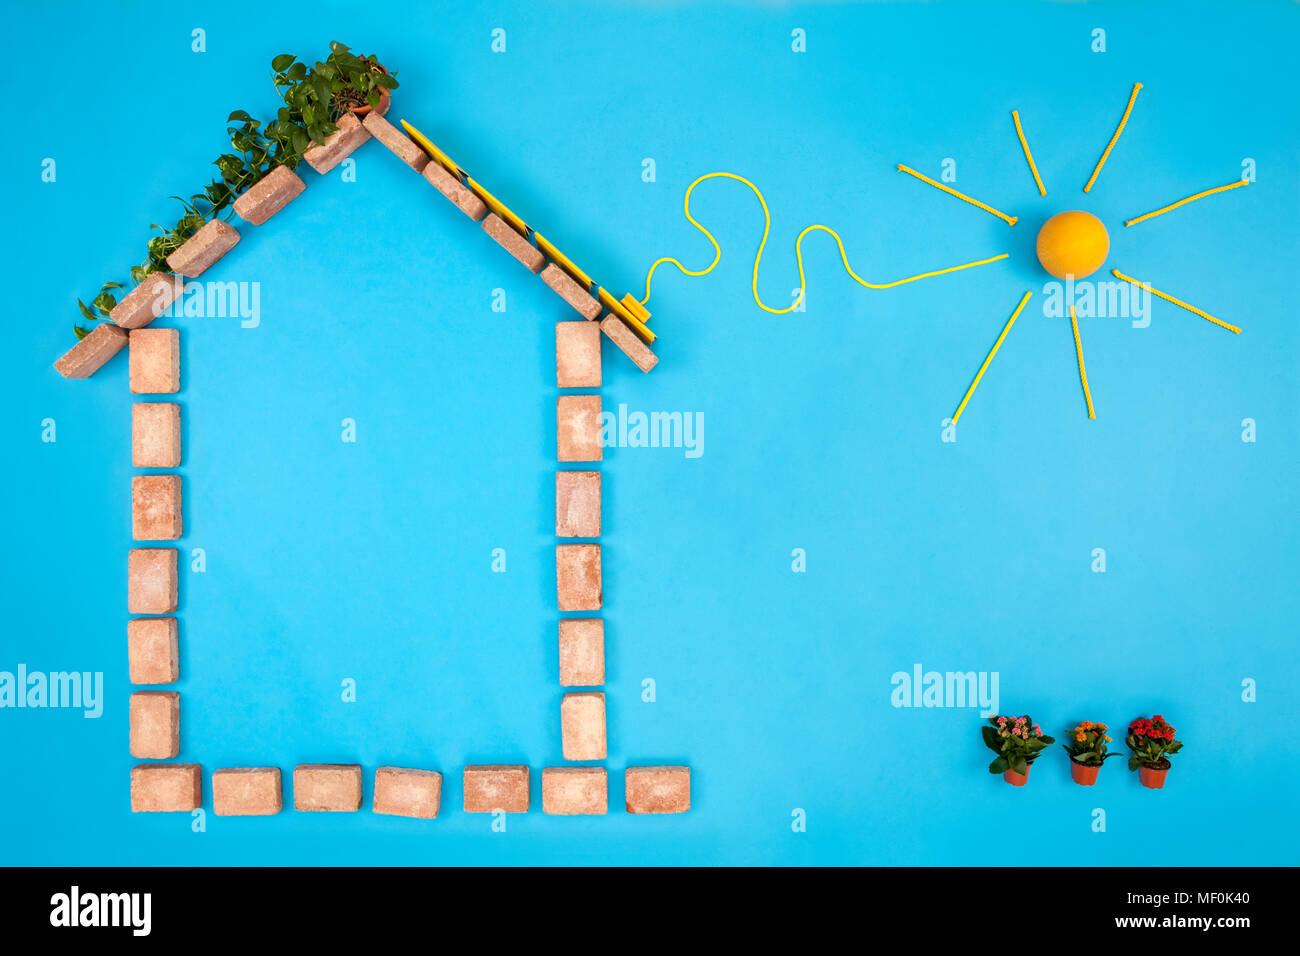 House shape made of bricks on blue background, with solar panels plugged to sun - Stock Image